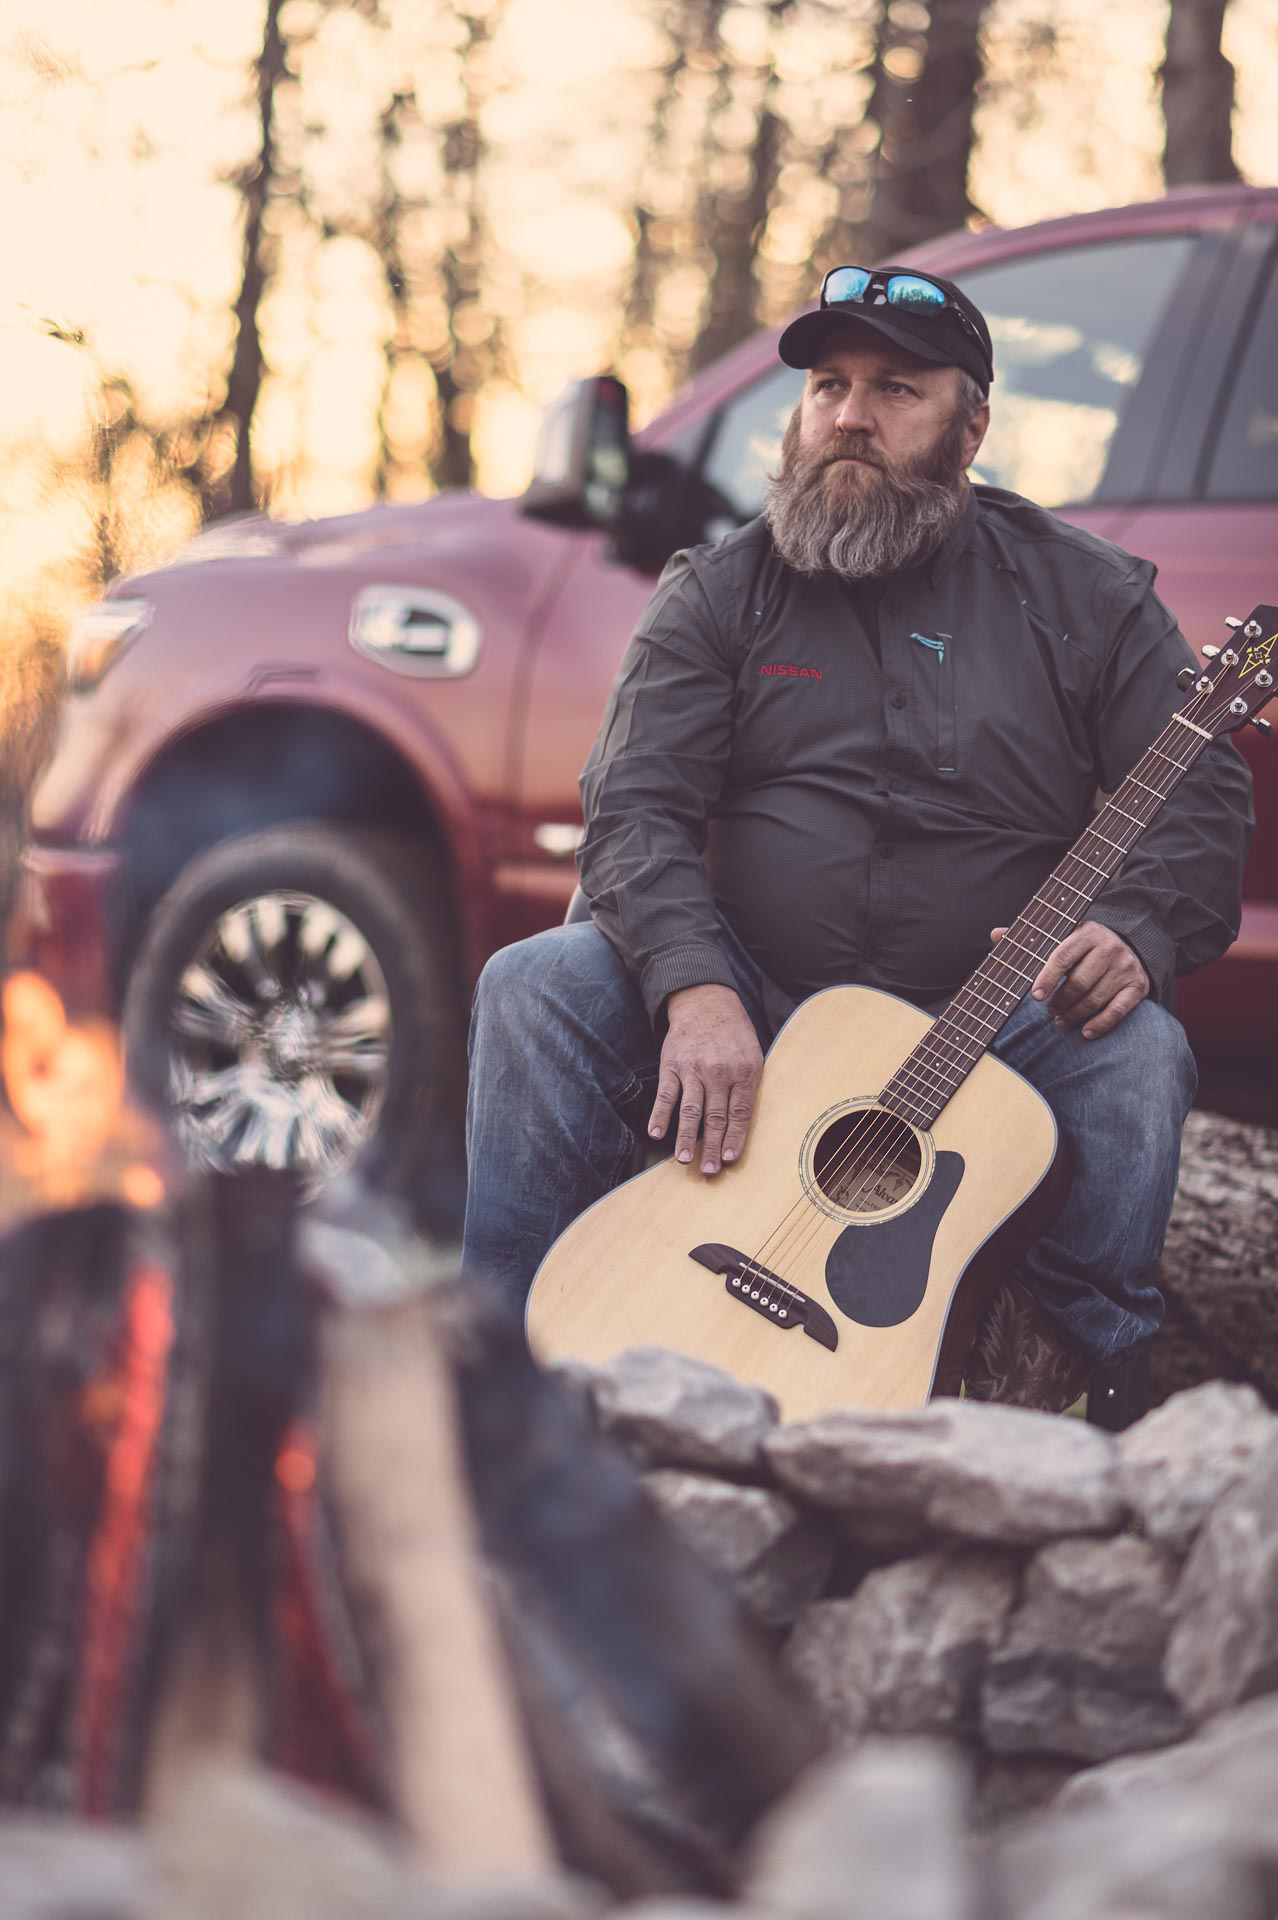 Sitting by fire waiting to play guitar. © Tony Bynum